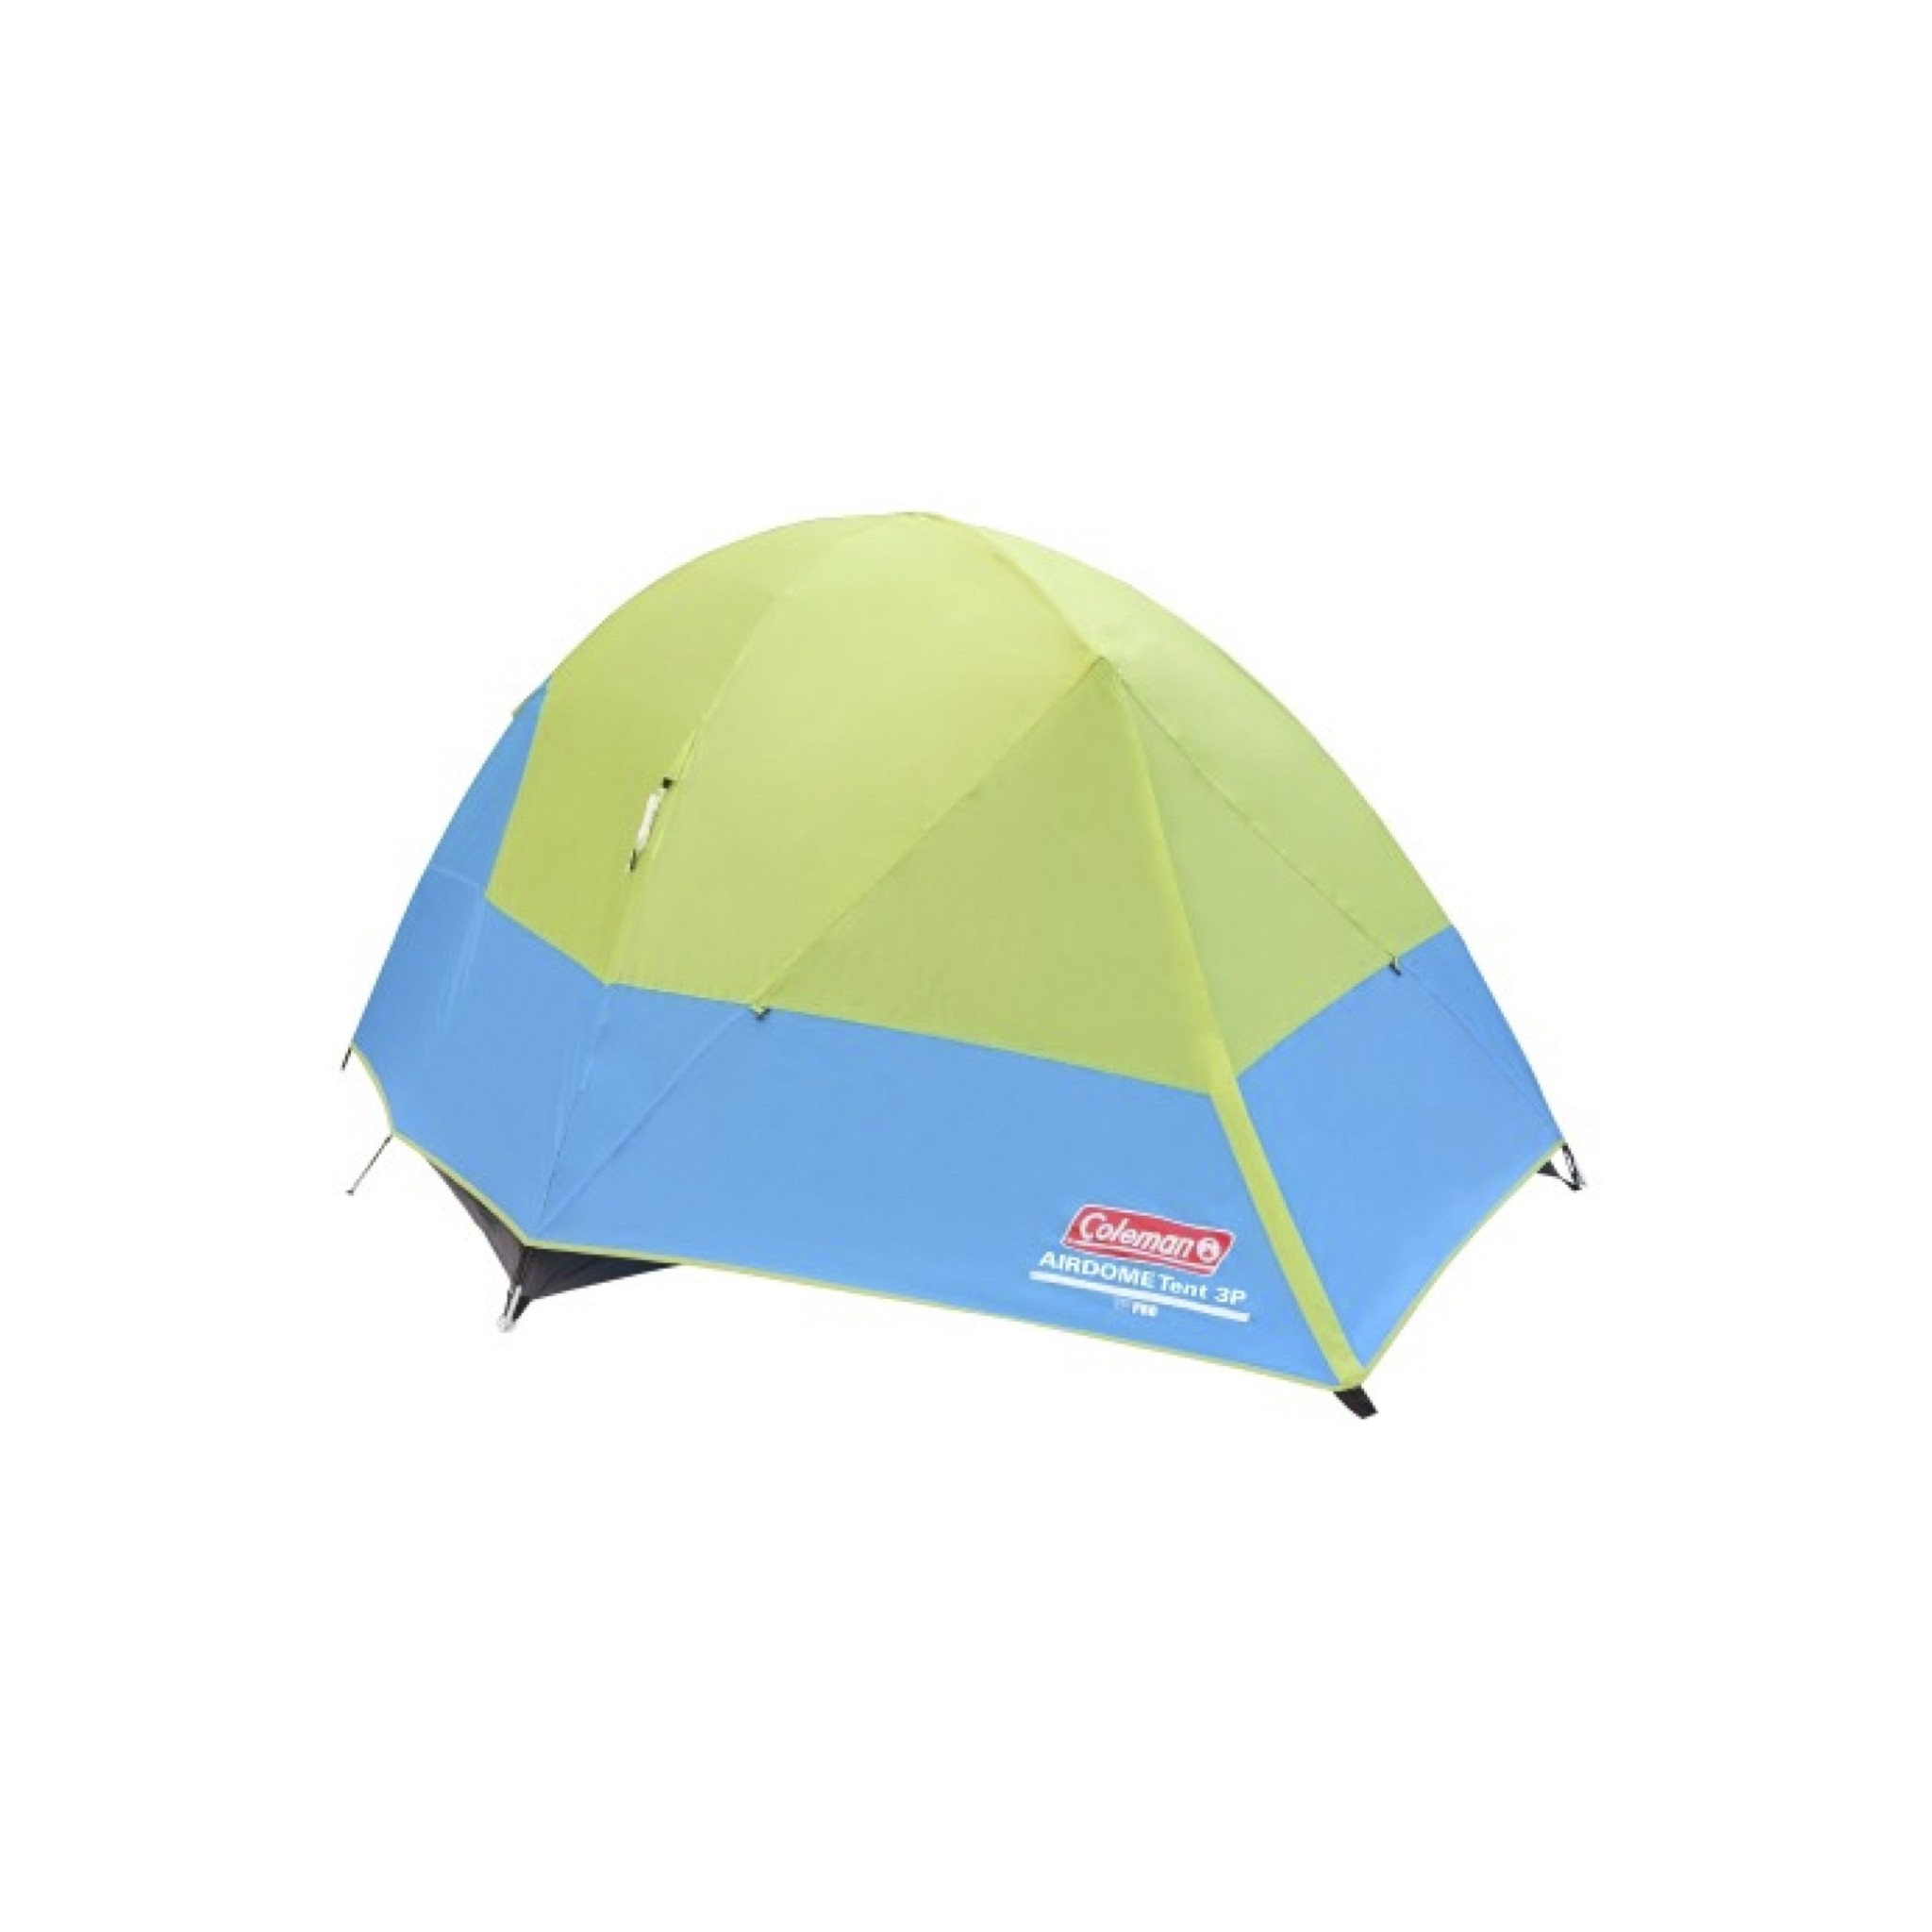 COLEMAN Airdome Tent 3P